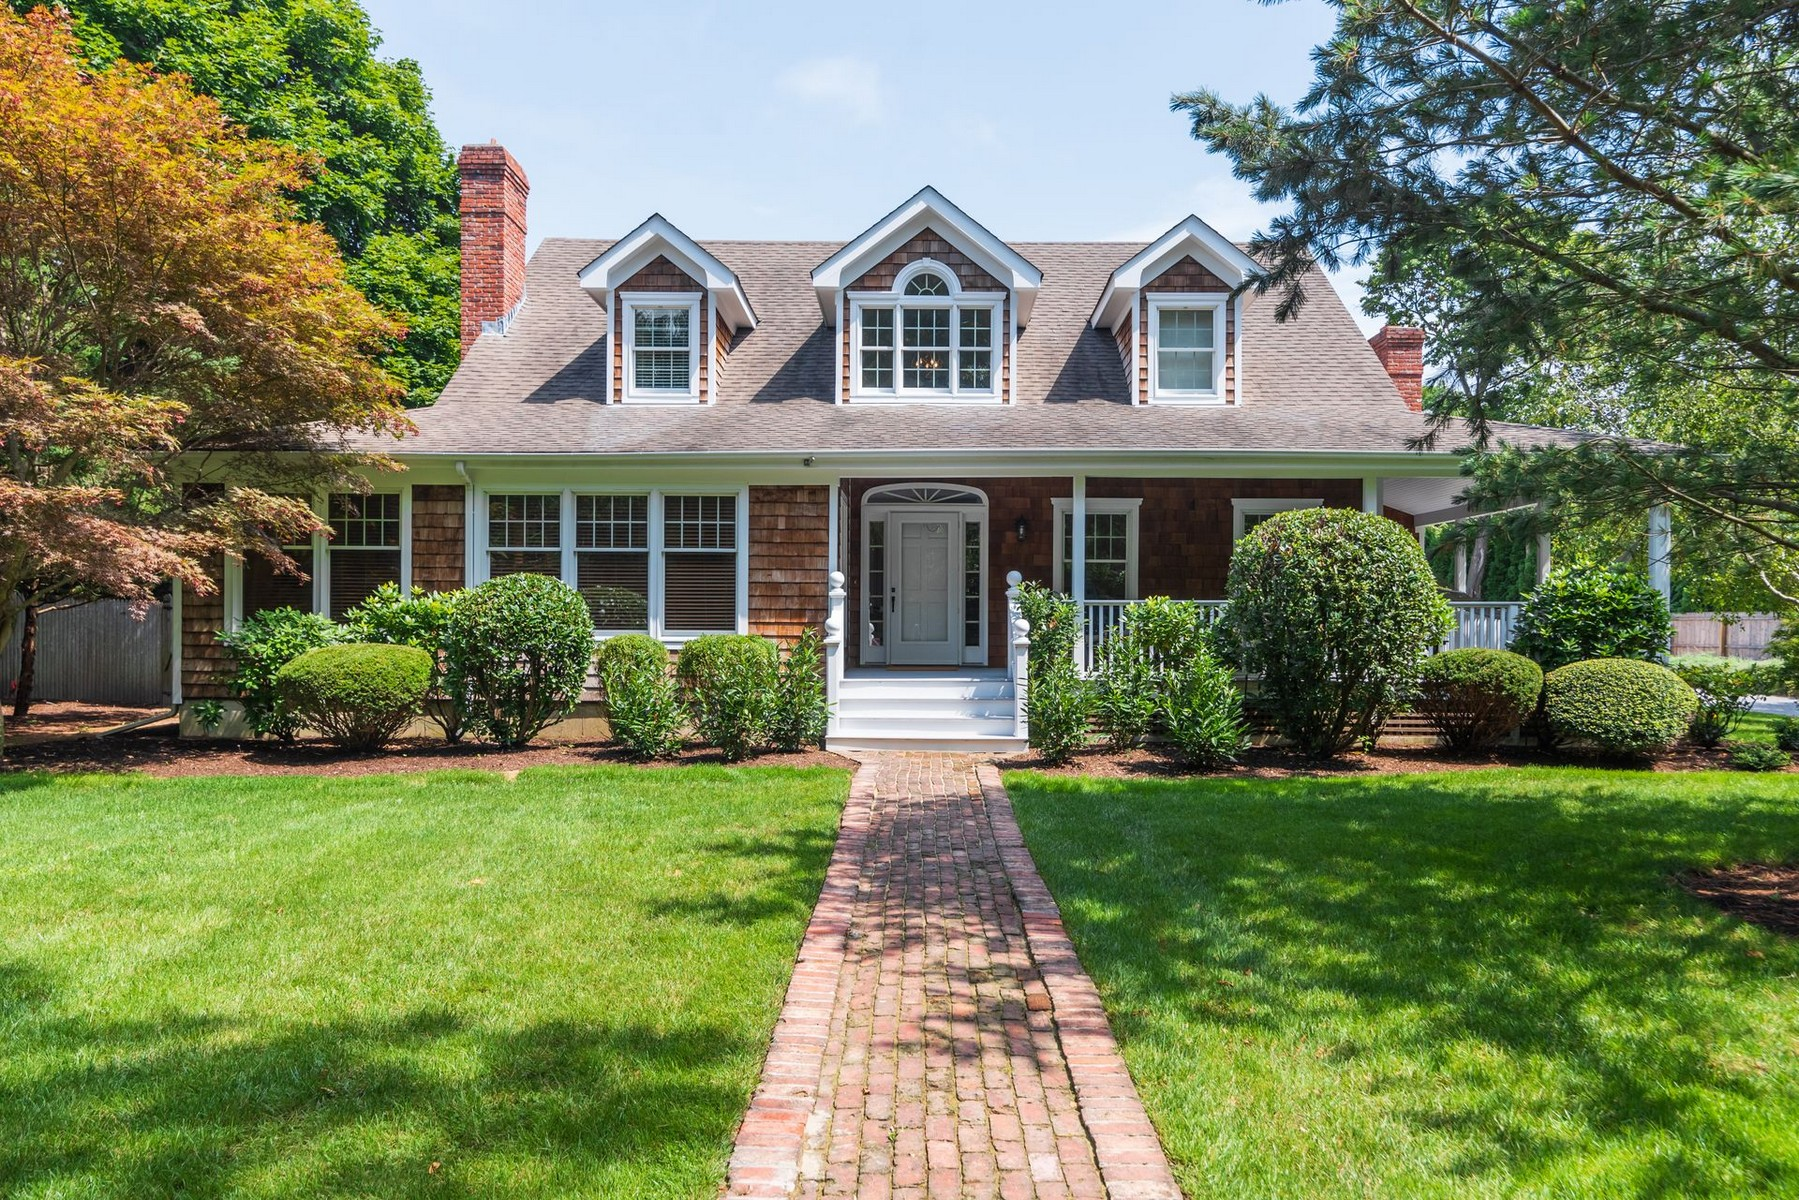 Single Family Homes for Sale at Bellport Village 68 South Country Rd Bellport, New York 11713 United States